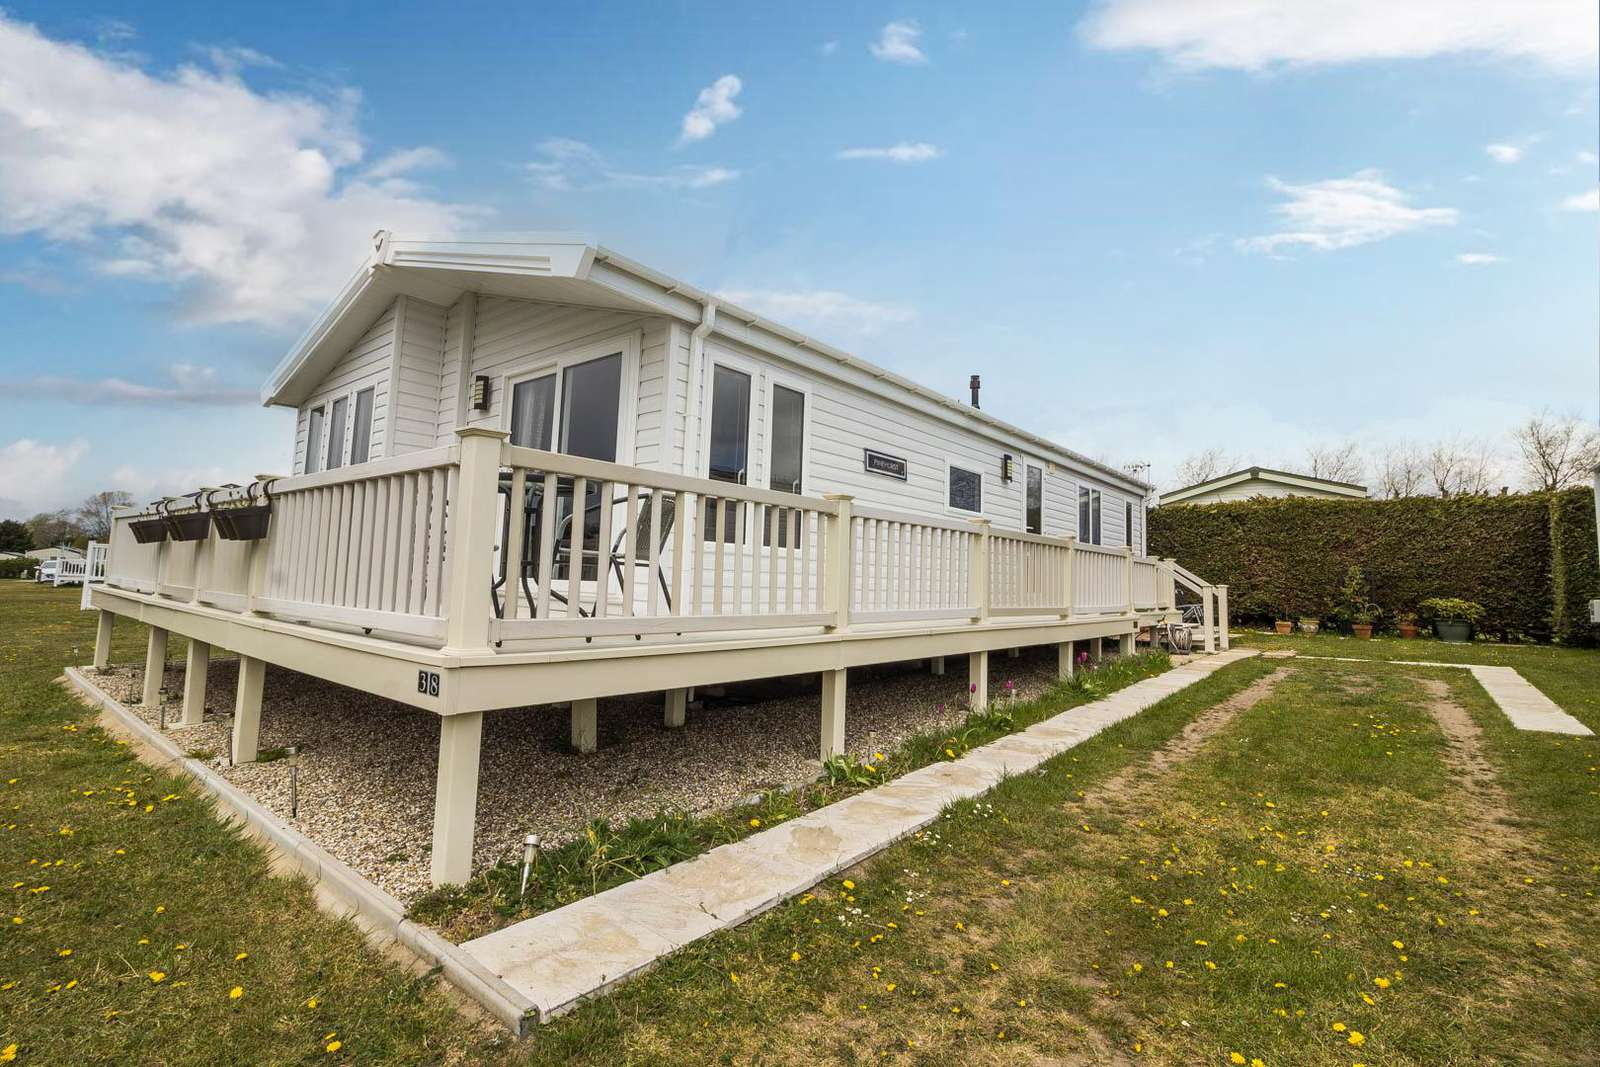 10038B – Bure Village, 2 bed, 6 berth lodge with decking. Platinum Deluxe rated. - property